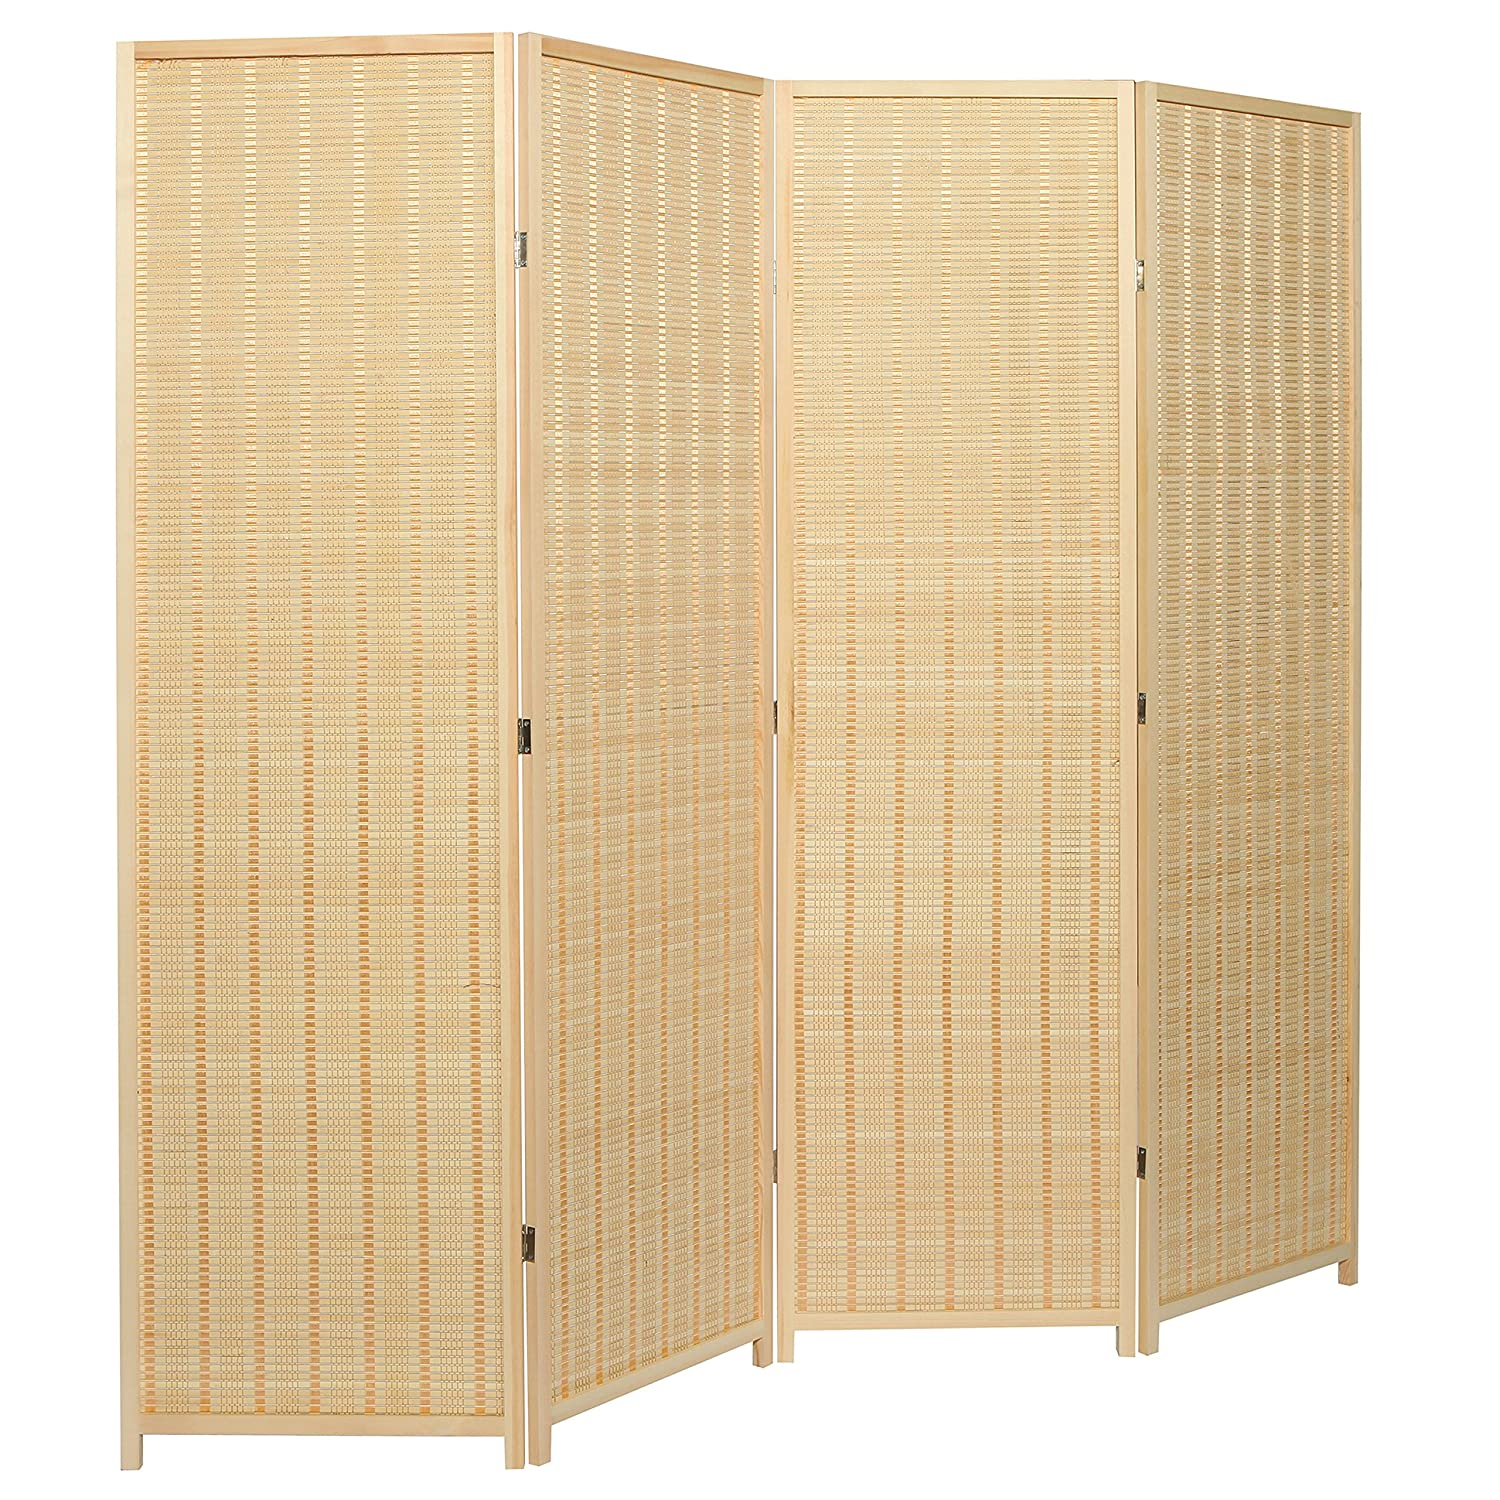 Amazon.com: MyGift Decorative Freestanding Beige Woven Bamboo 4 ...